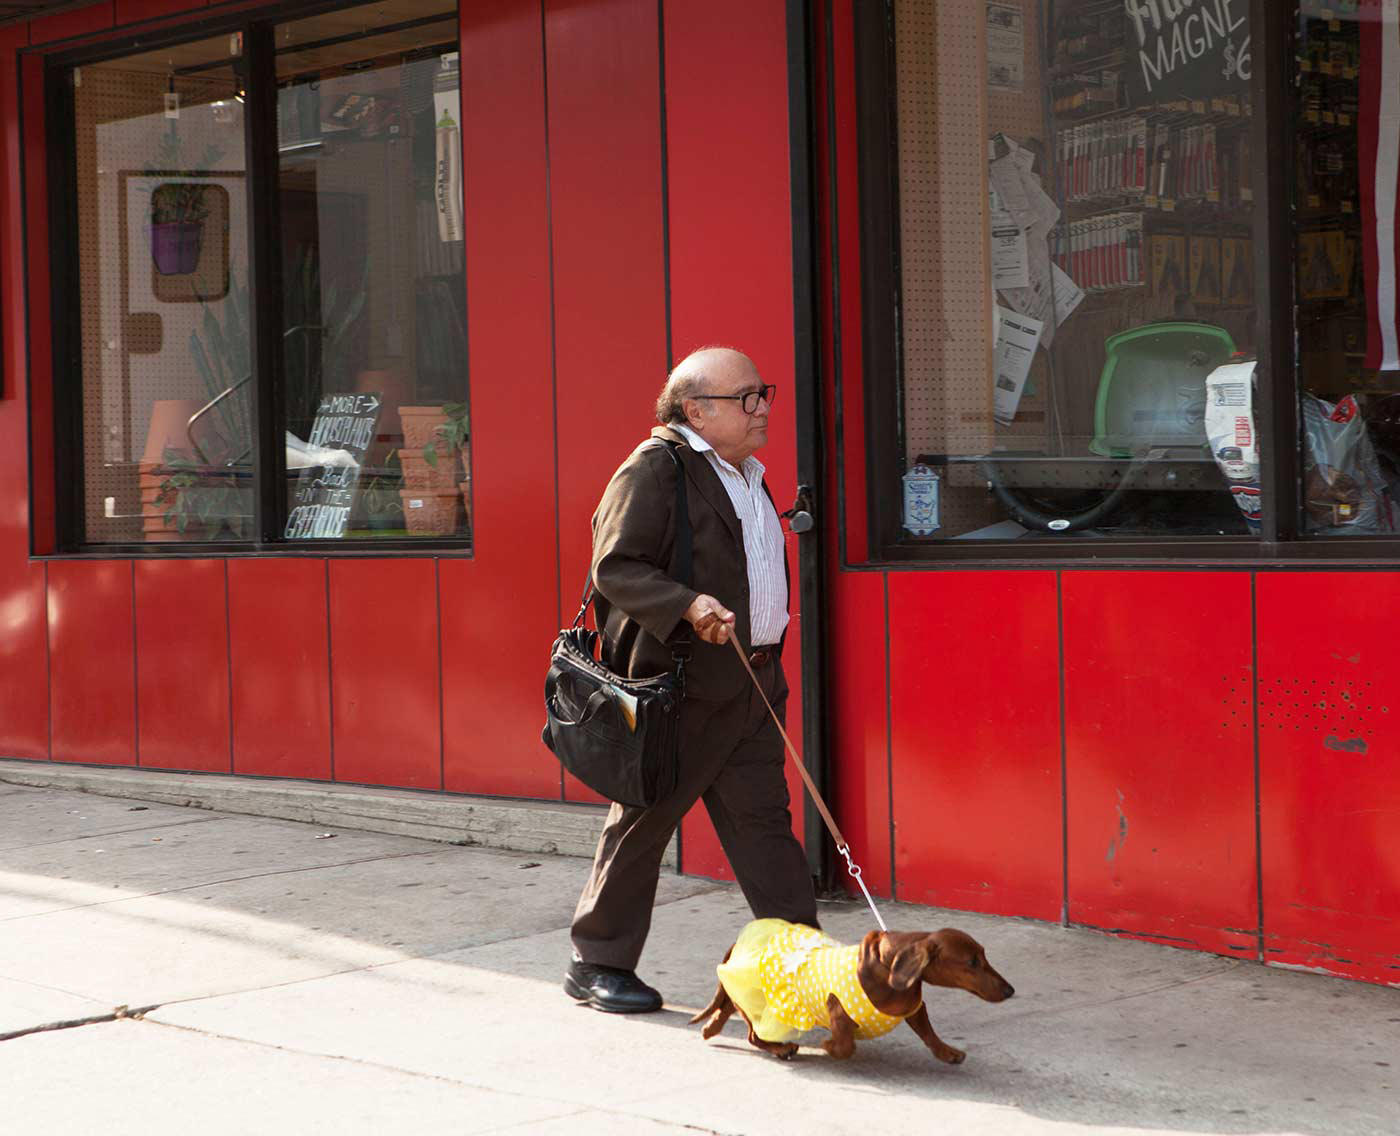 Check out the movie photos of 'Wiener-Dog'